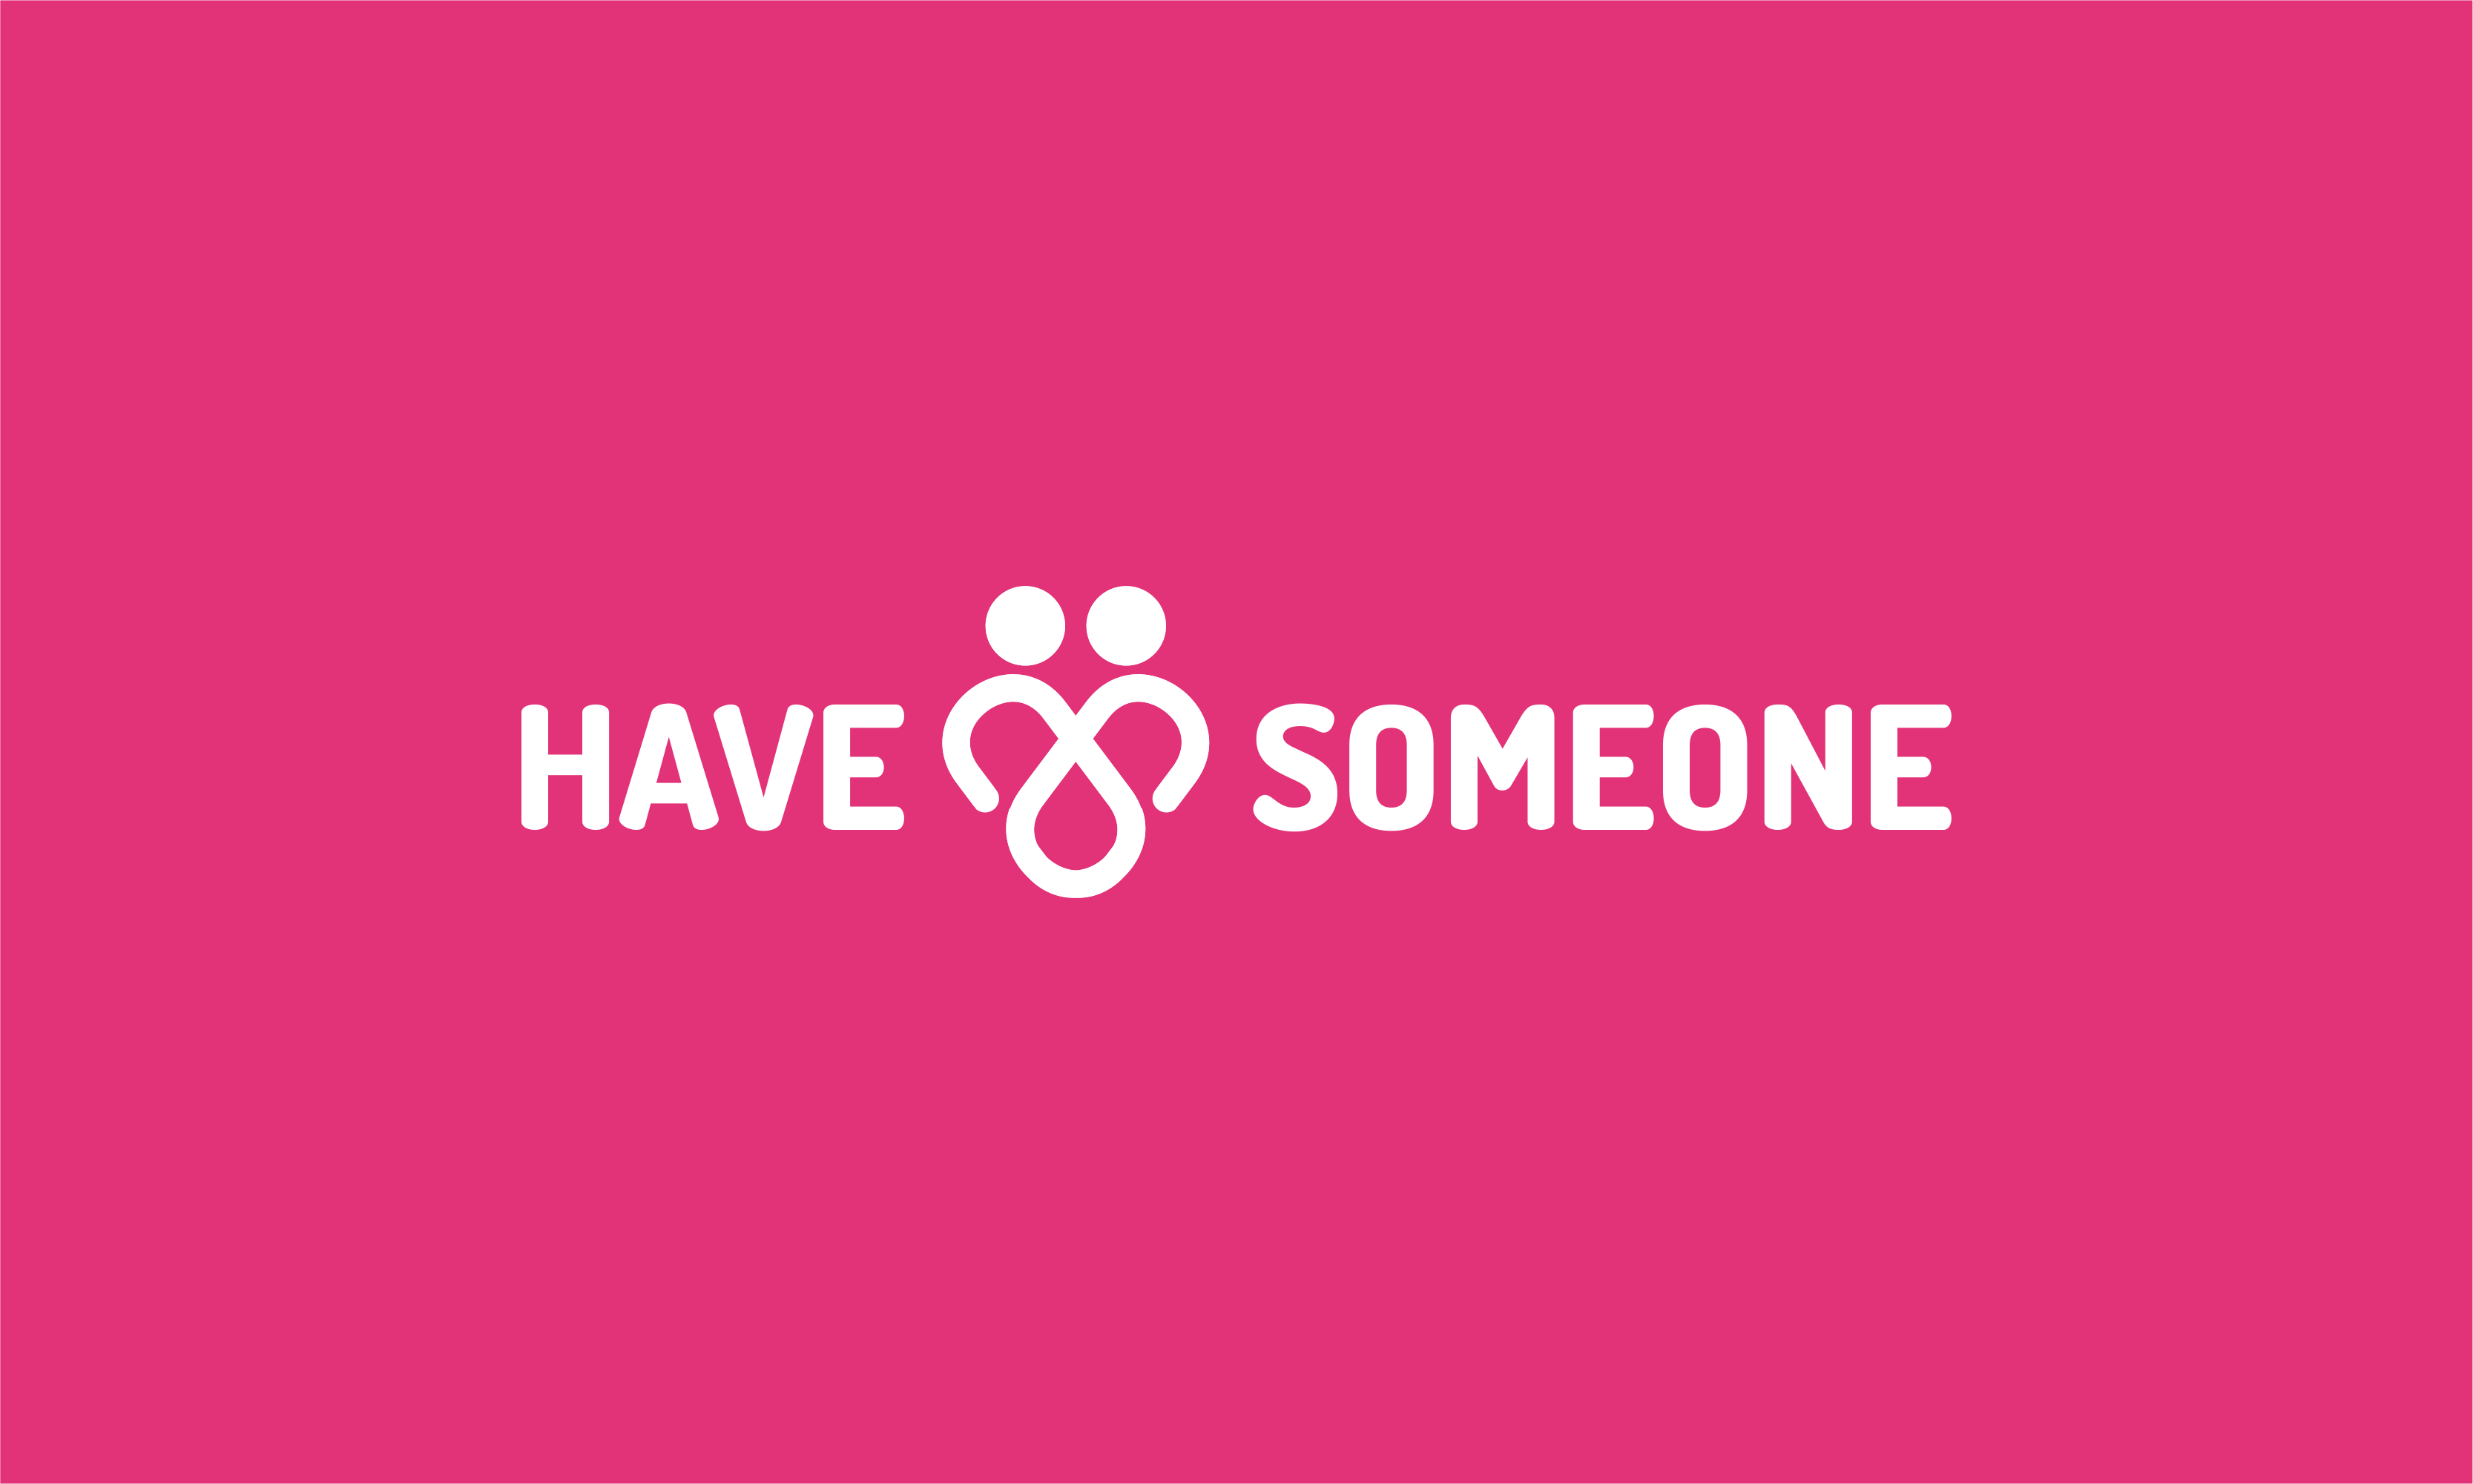 Havesomeone